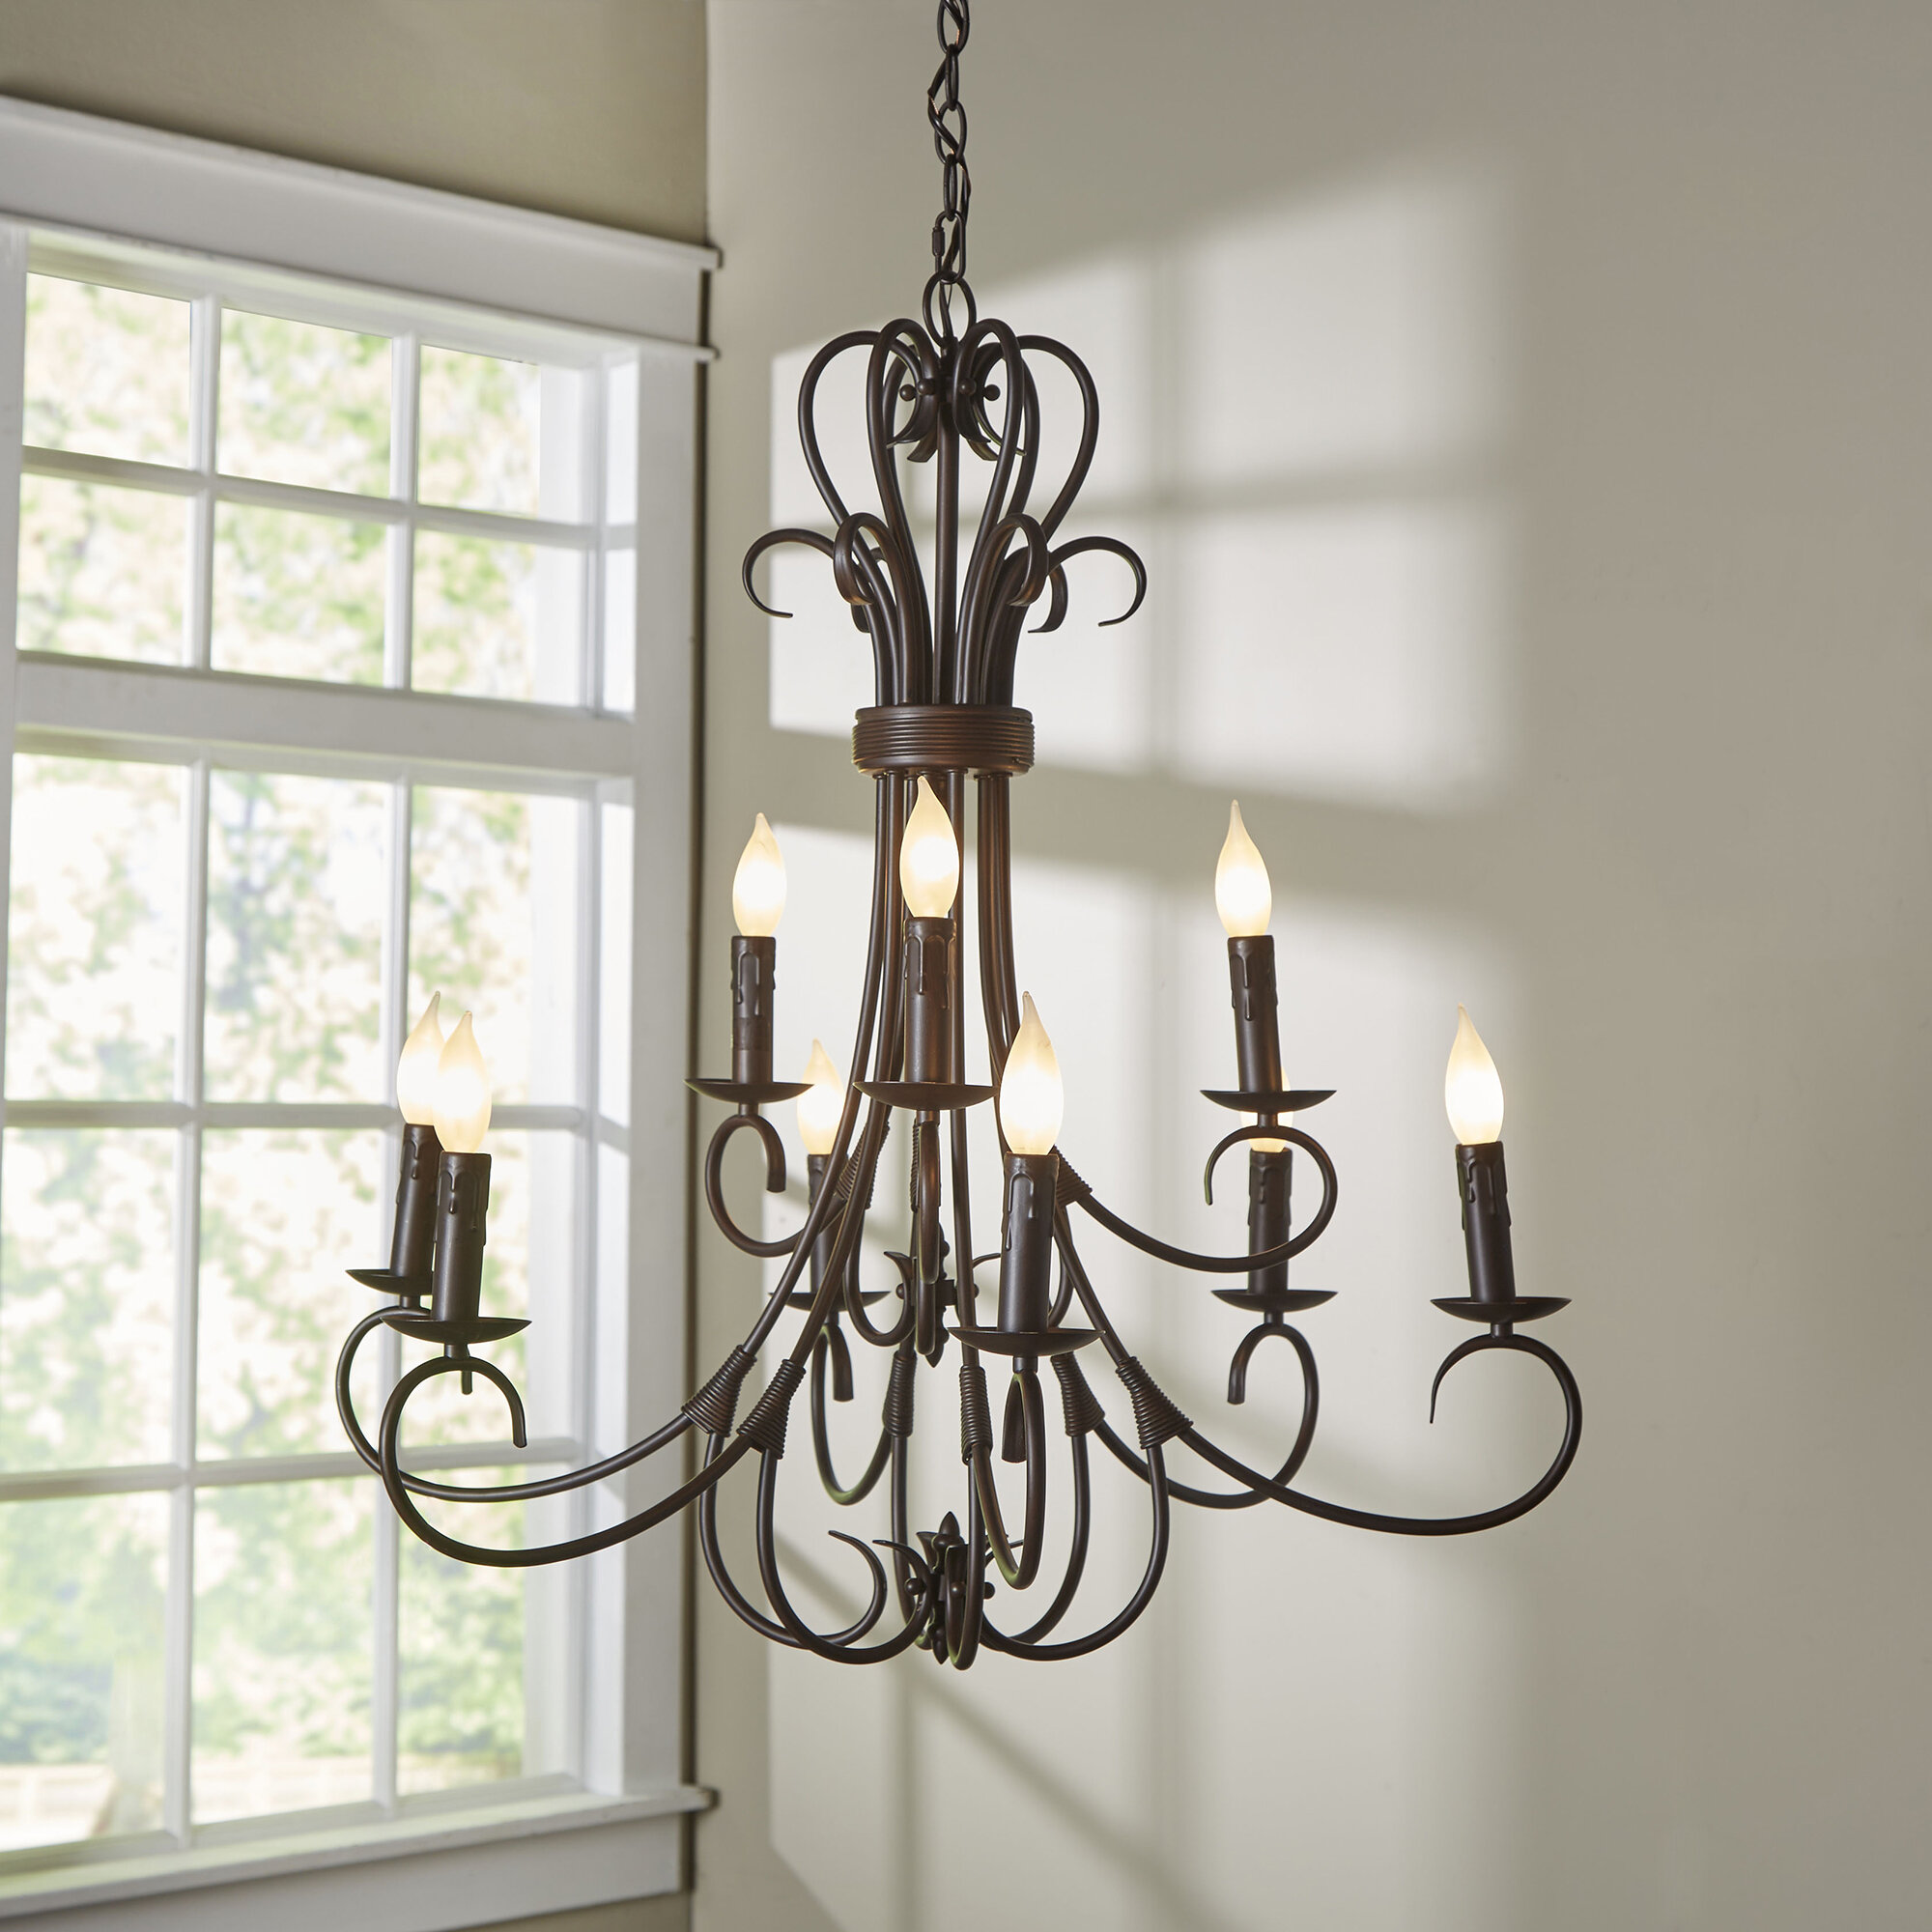 Alcott Hill Gaines 9 Light Candle Style Chandelier & Reviews